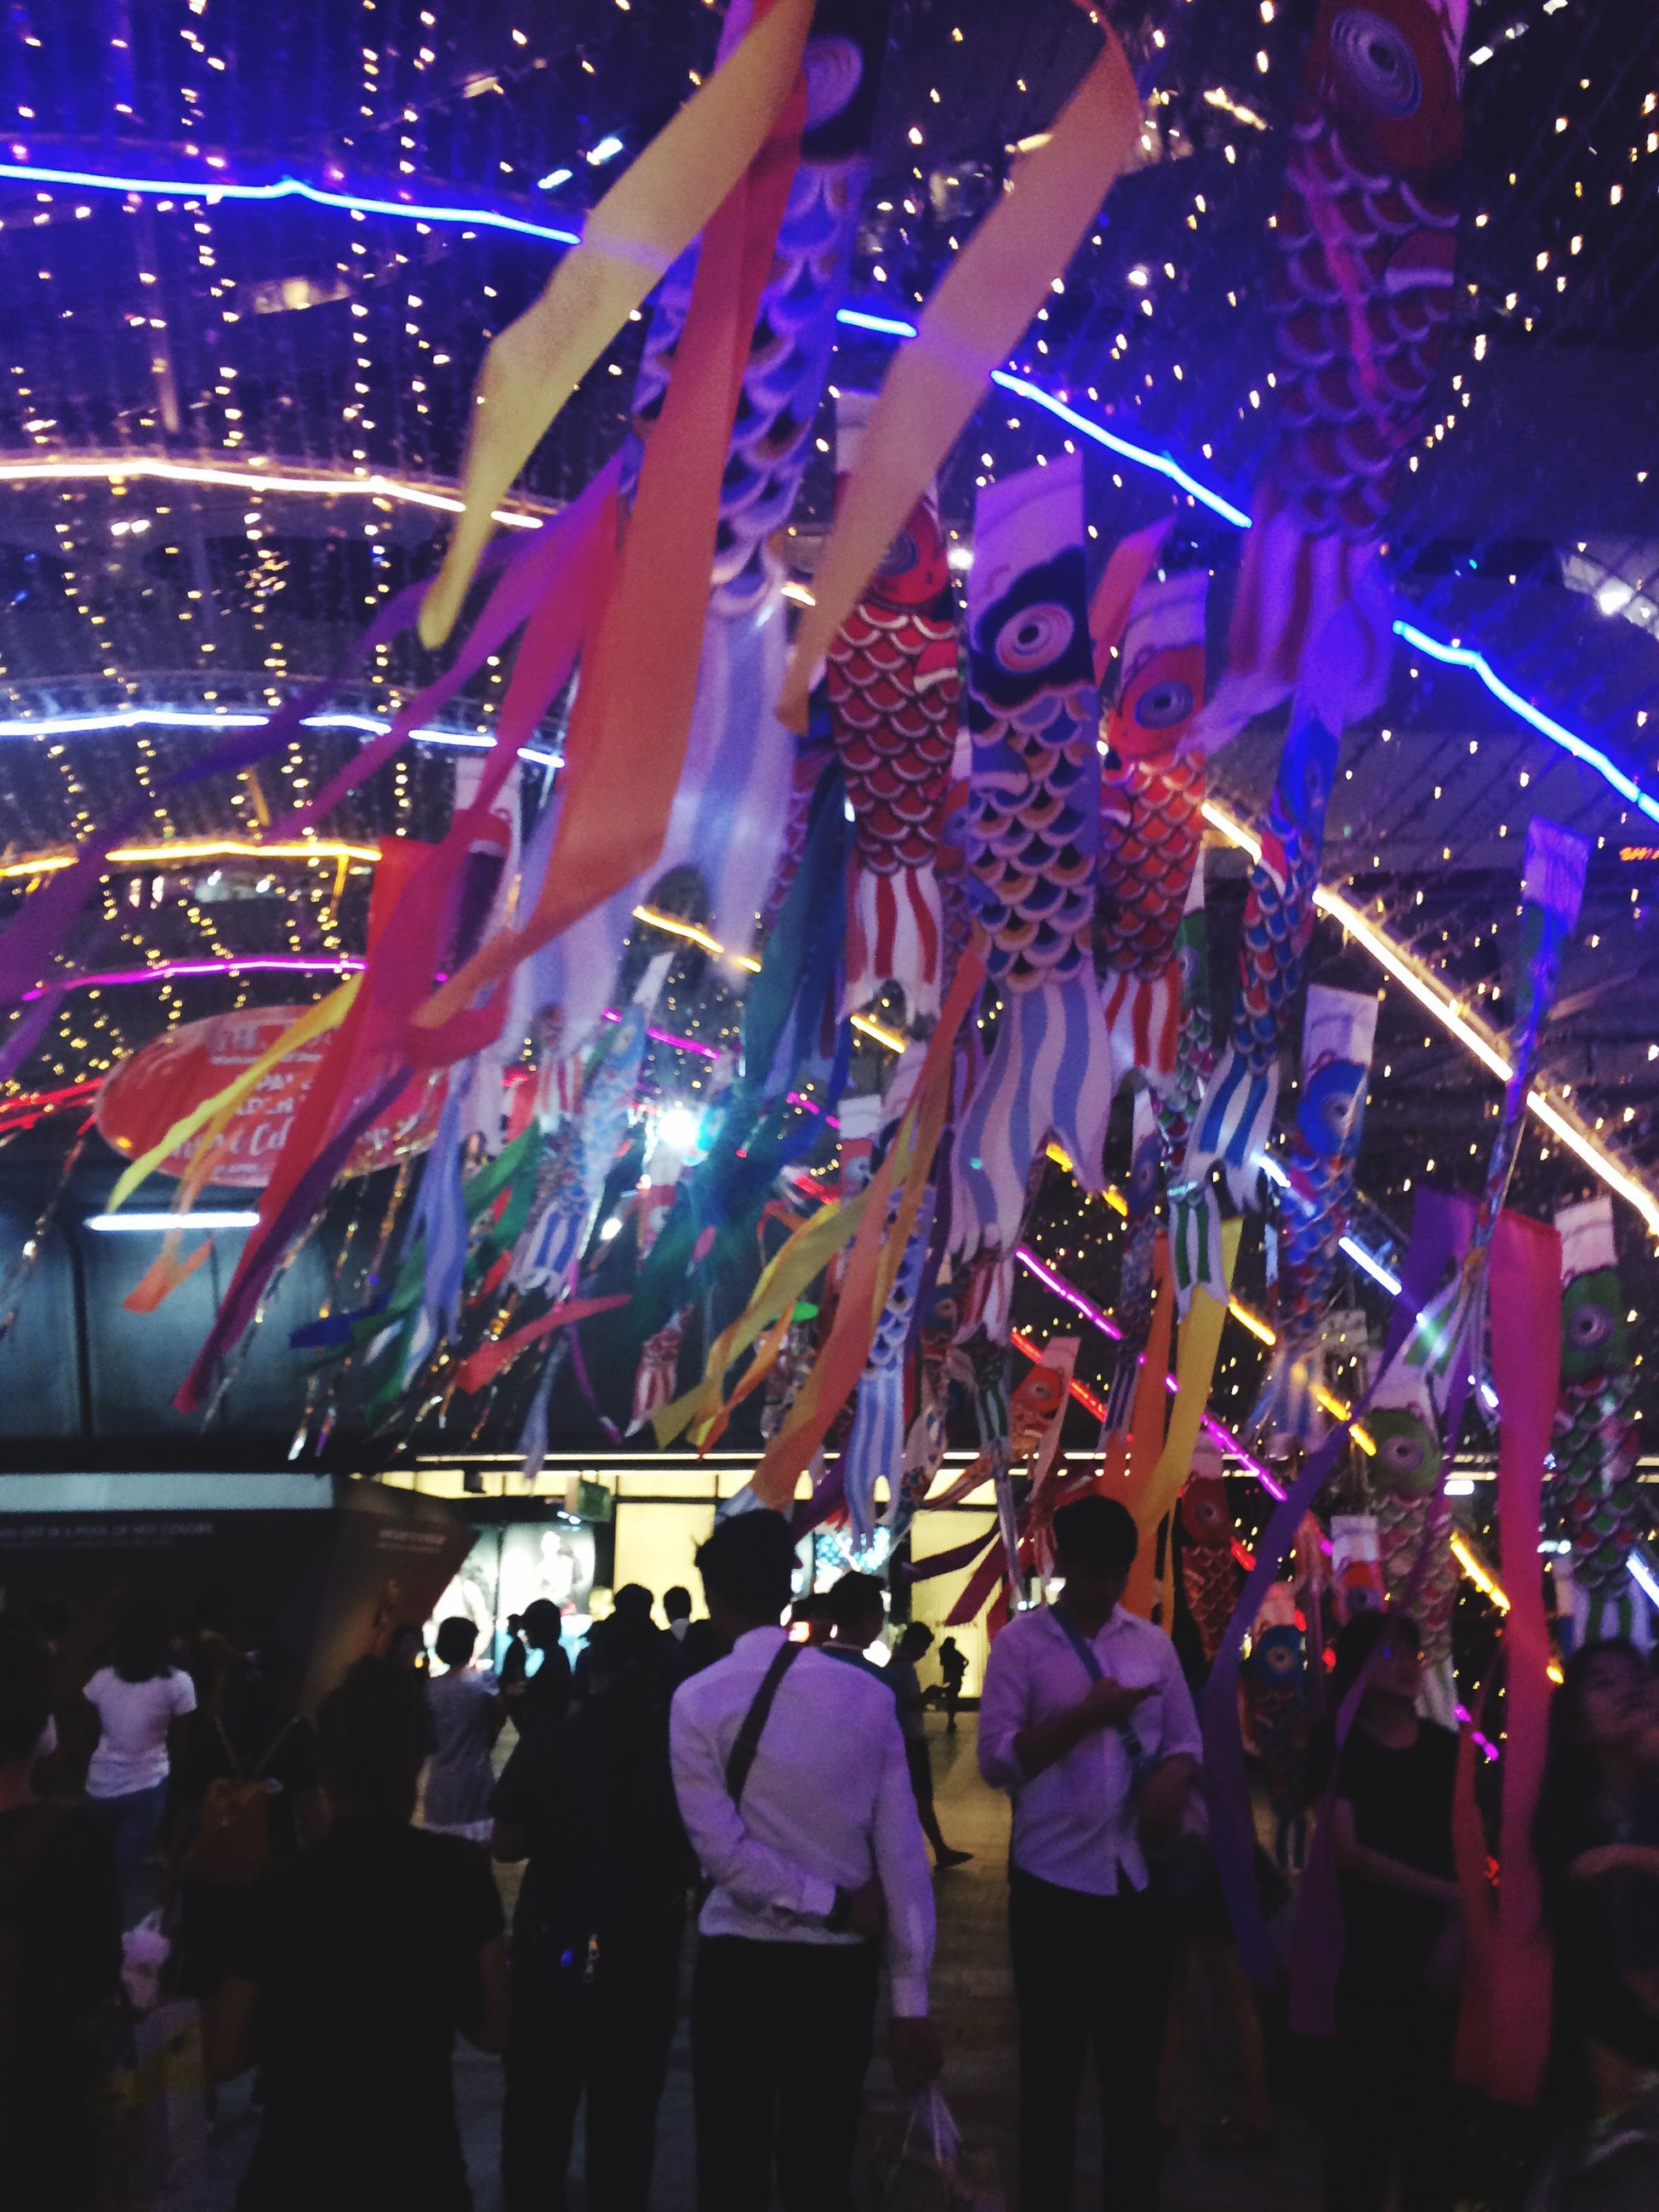 large group of people, illuminated, enjoyment, night, crowd, real people, dancing, music, women, men, celebration, popular music concert, nightlife, excitement, people, performance, audience, event, indoors, fan - enthusiast, adults only, adult, human body part